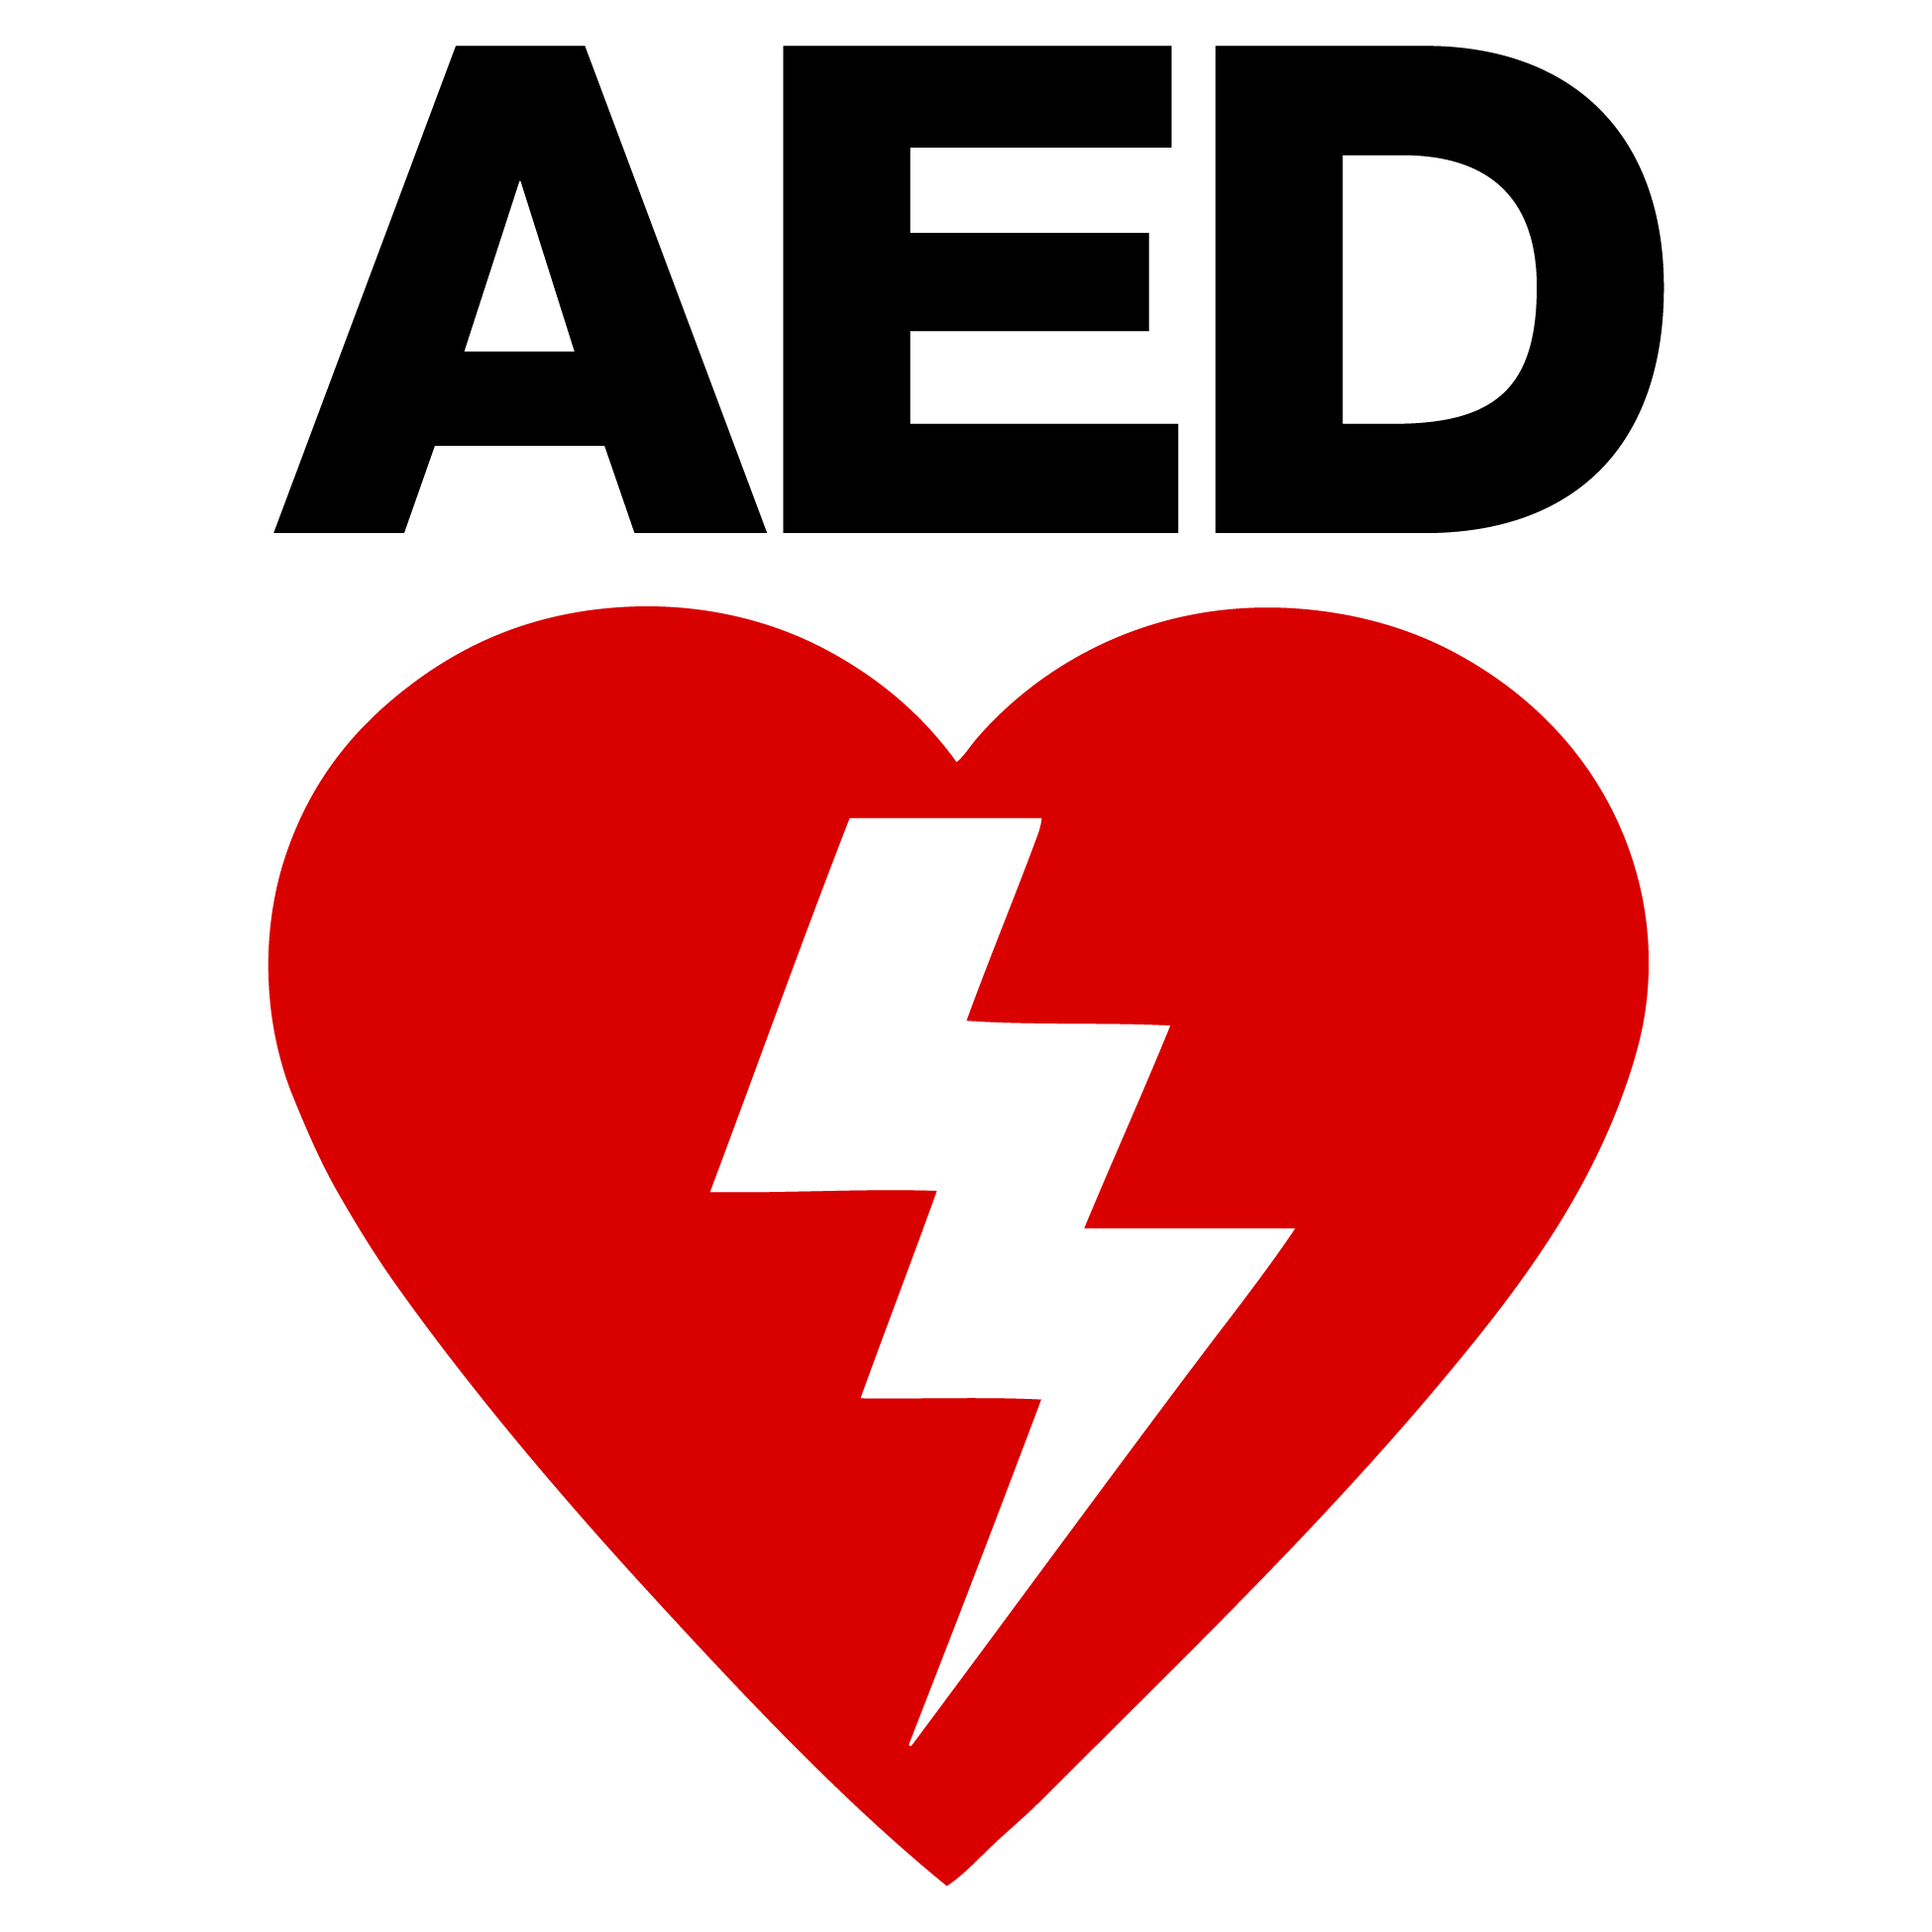 pics for gt aed symbol vector